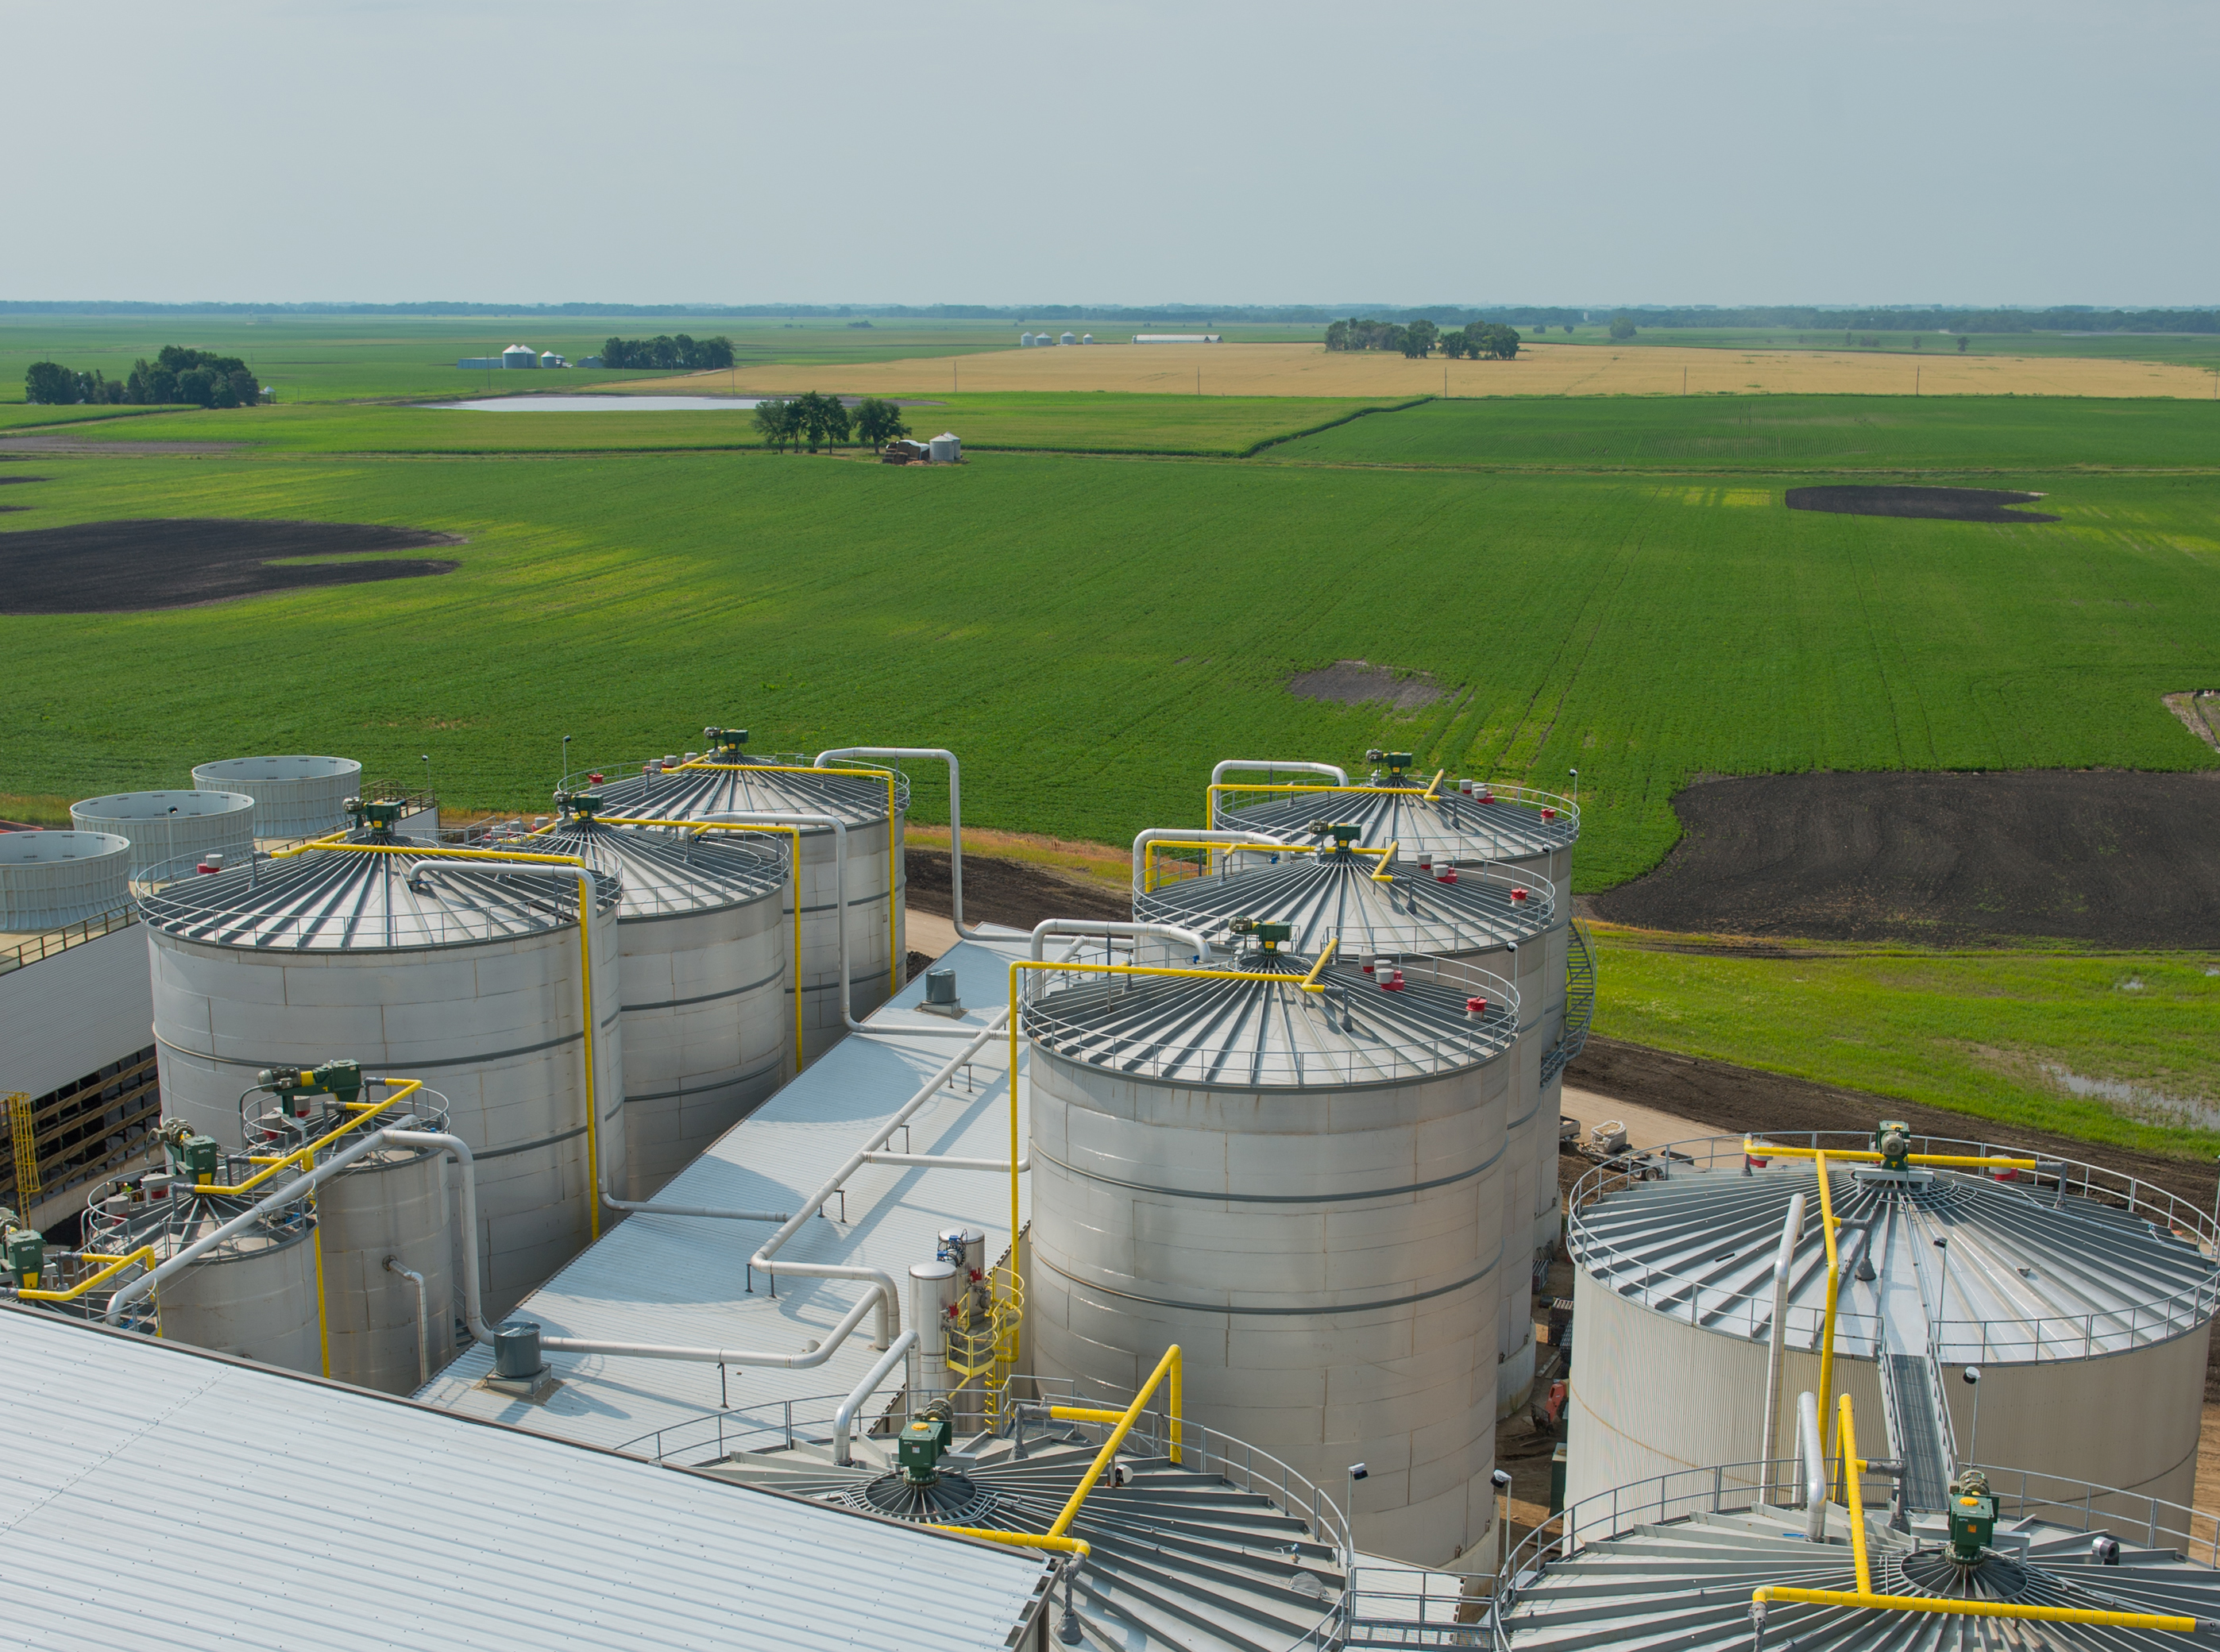 The new Project Liberty cellulosic ethanol facility in Emmertsburg, Iowa.